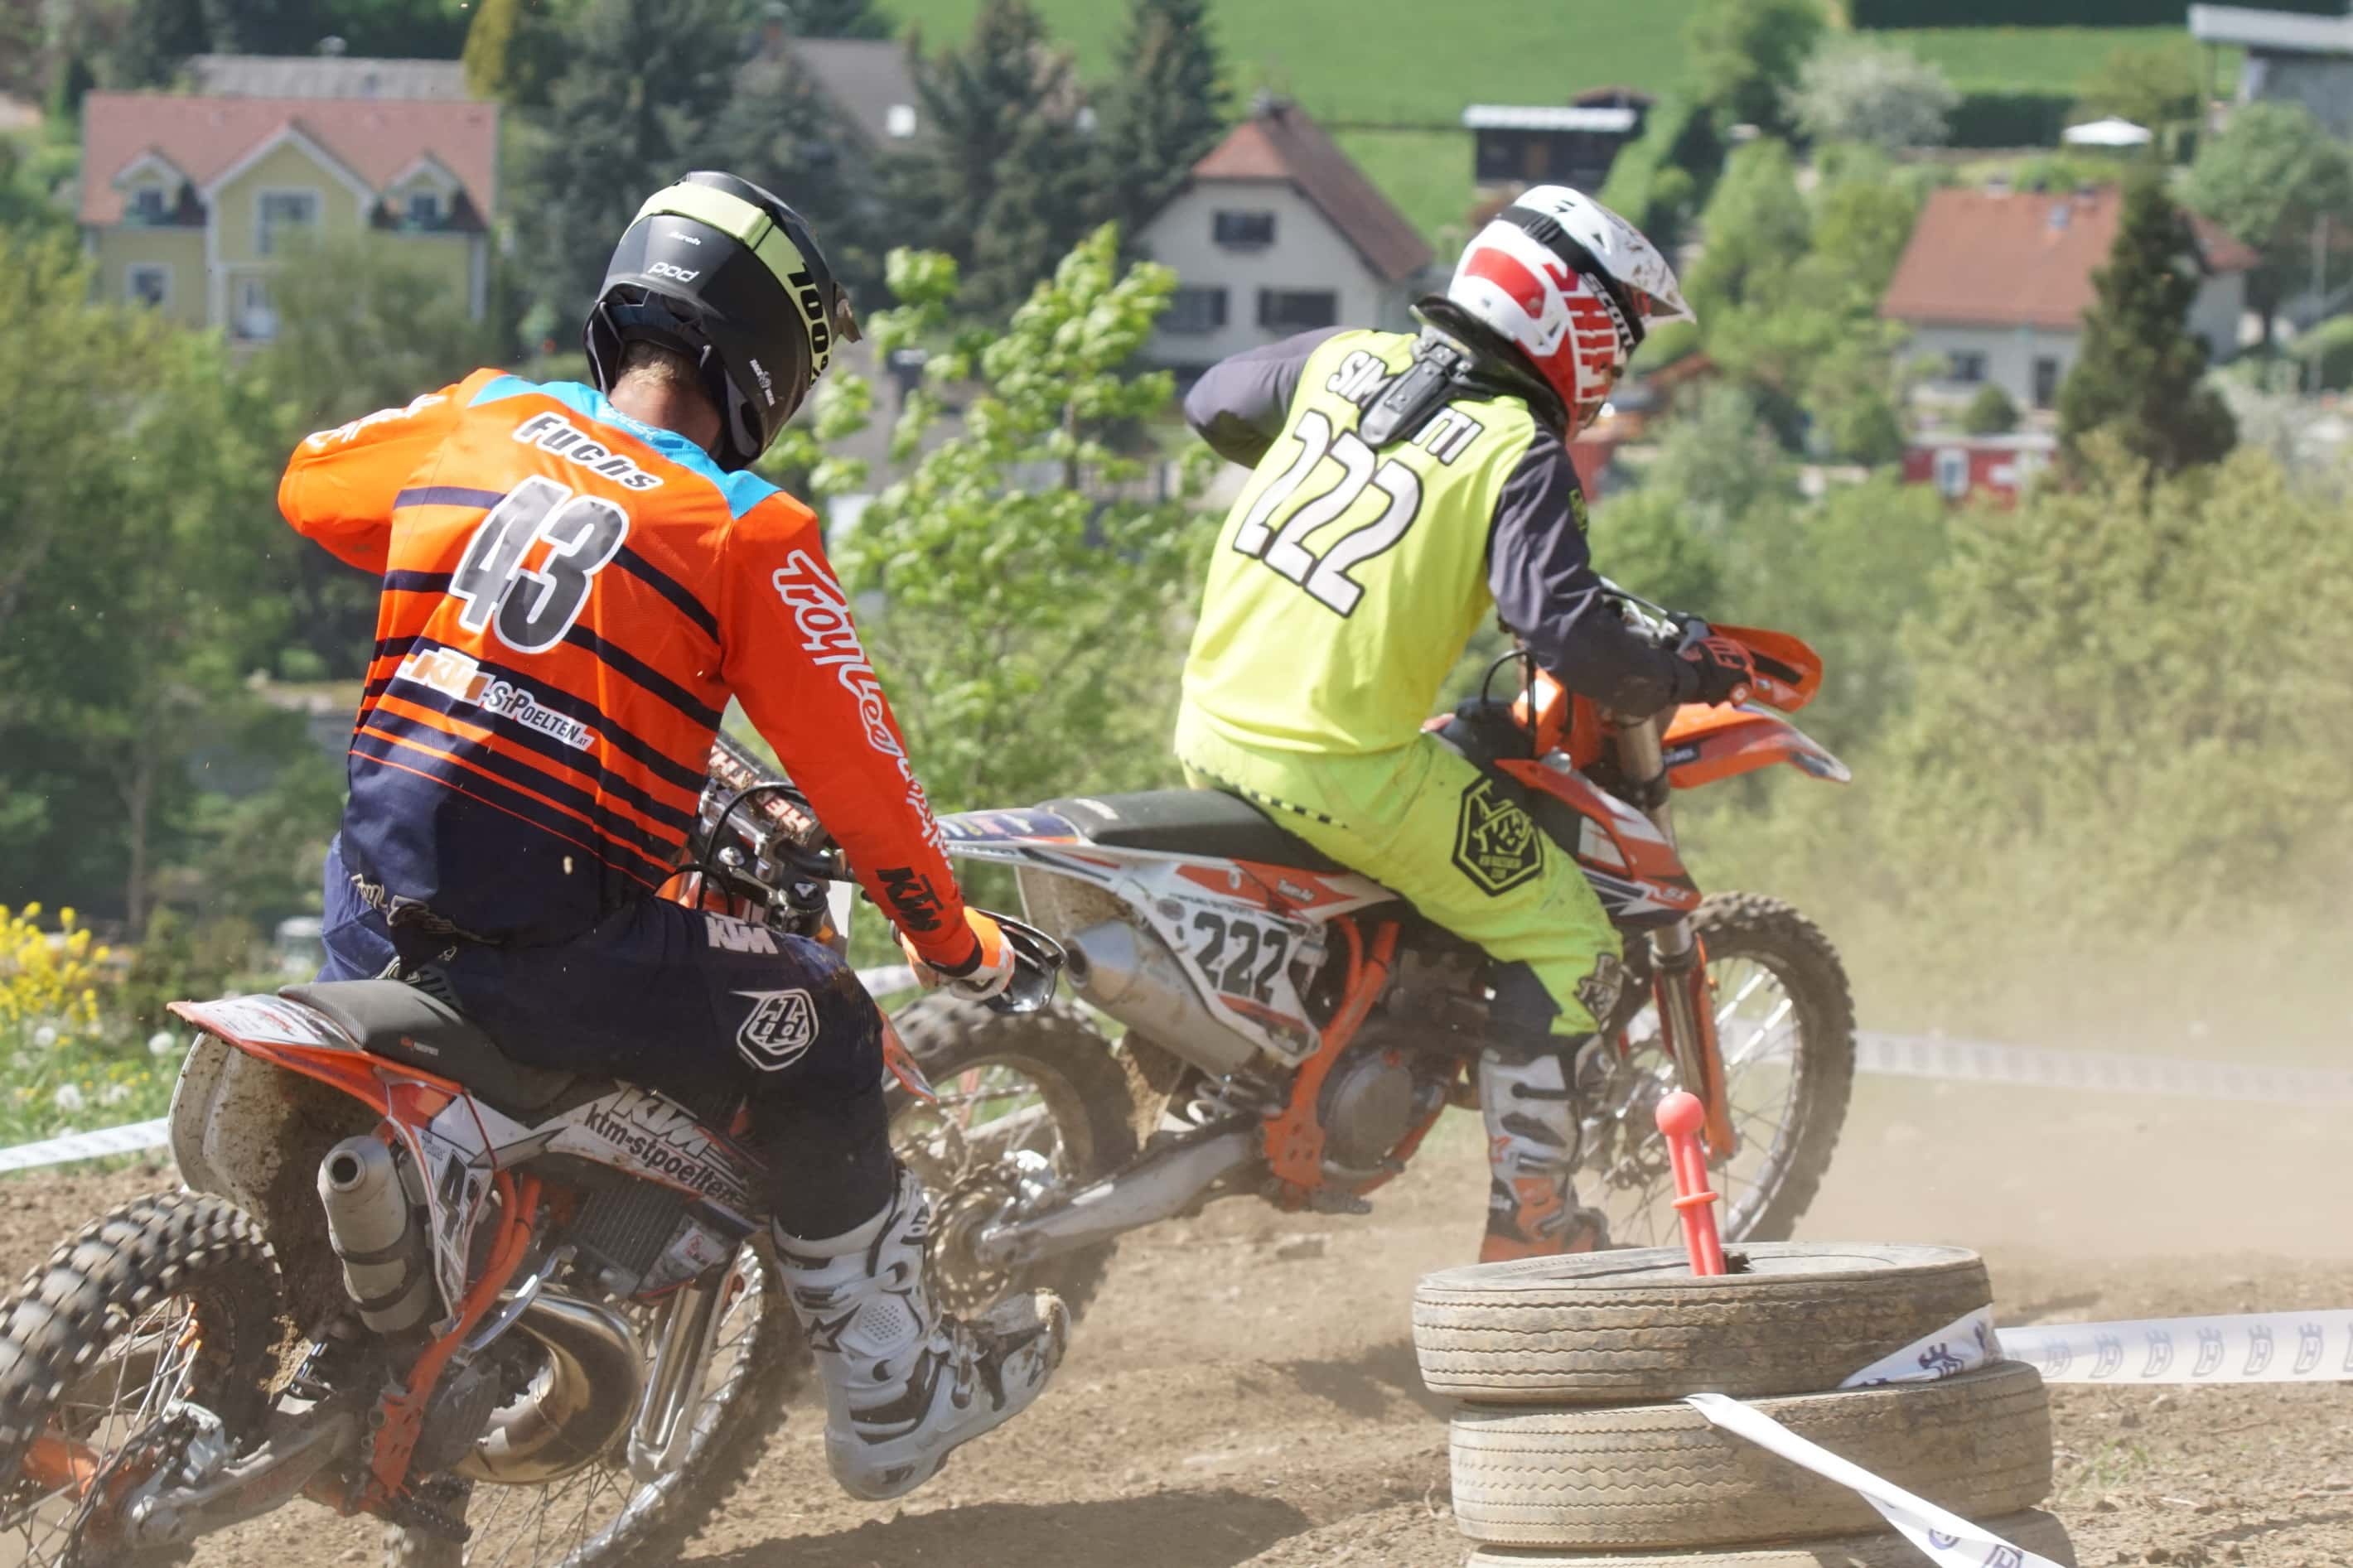 DSC 139_Moto Cross Sittendorf Teil1 am 29.04.2018